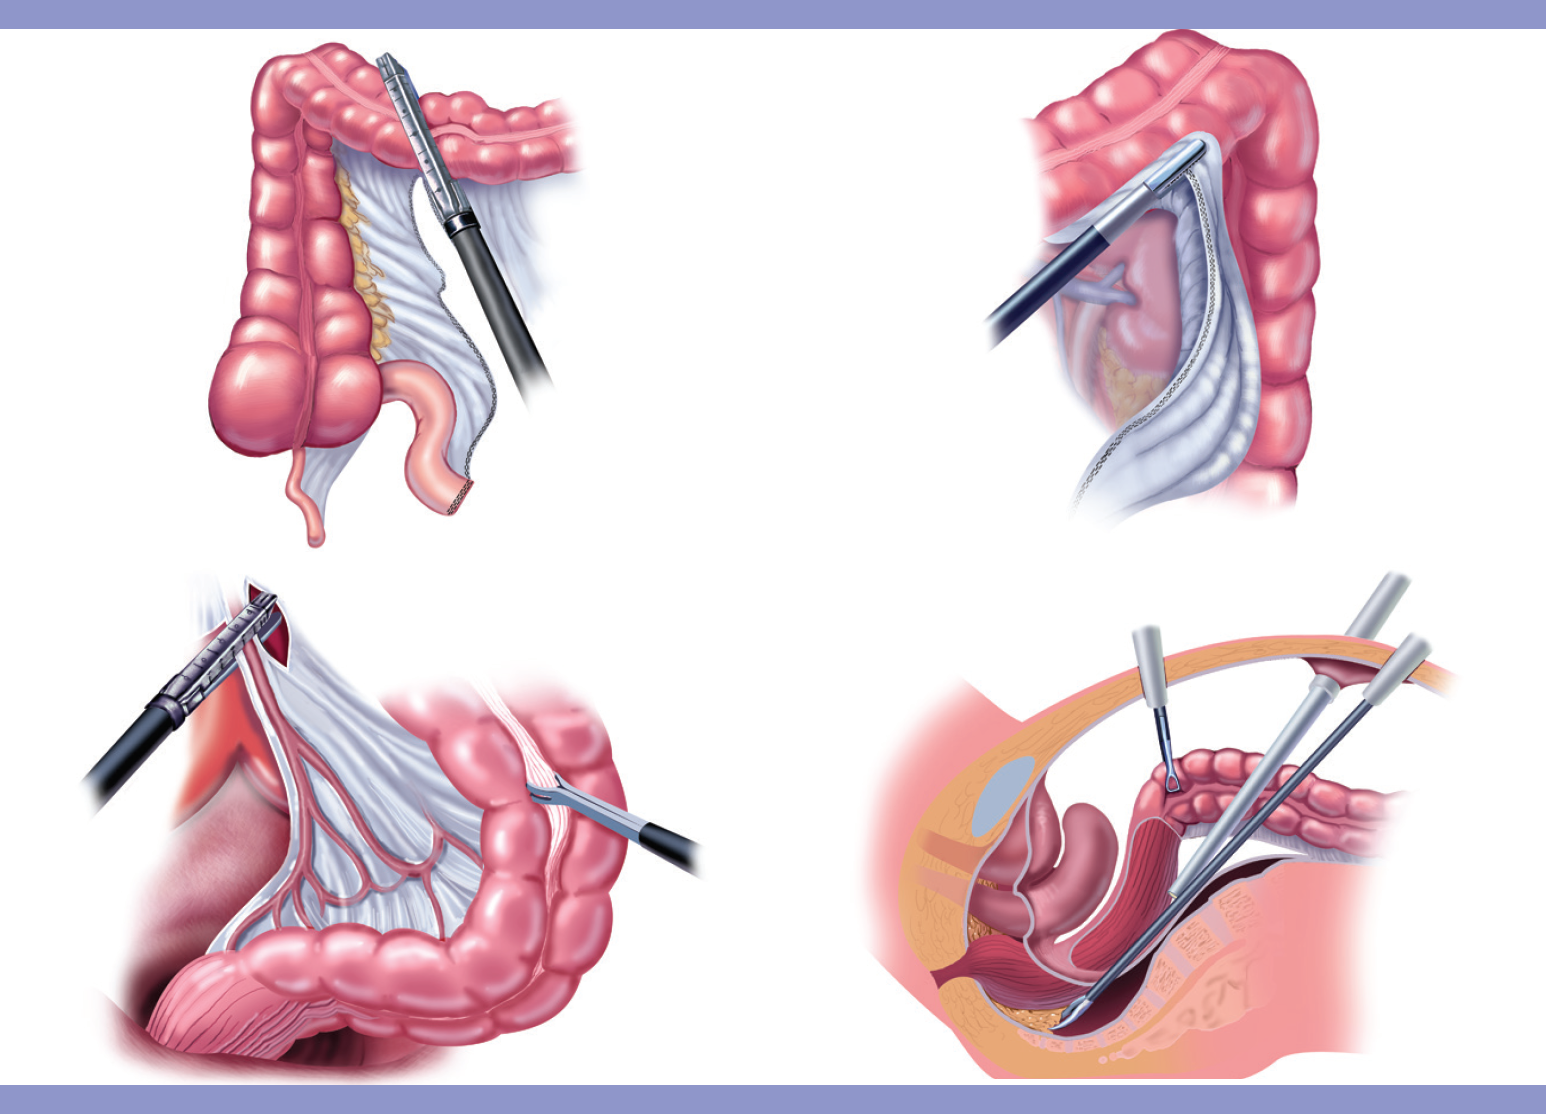 Laparoscopic Colon Resection Patient Information From Sages